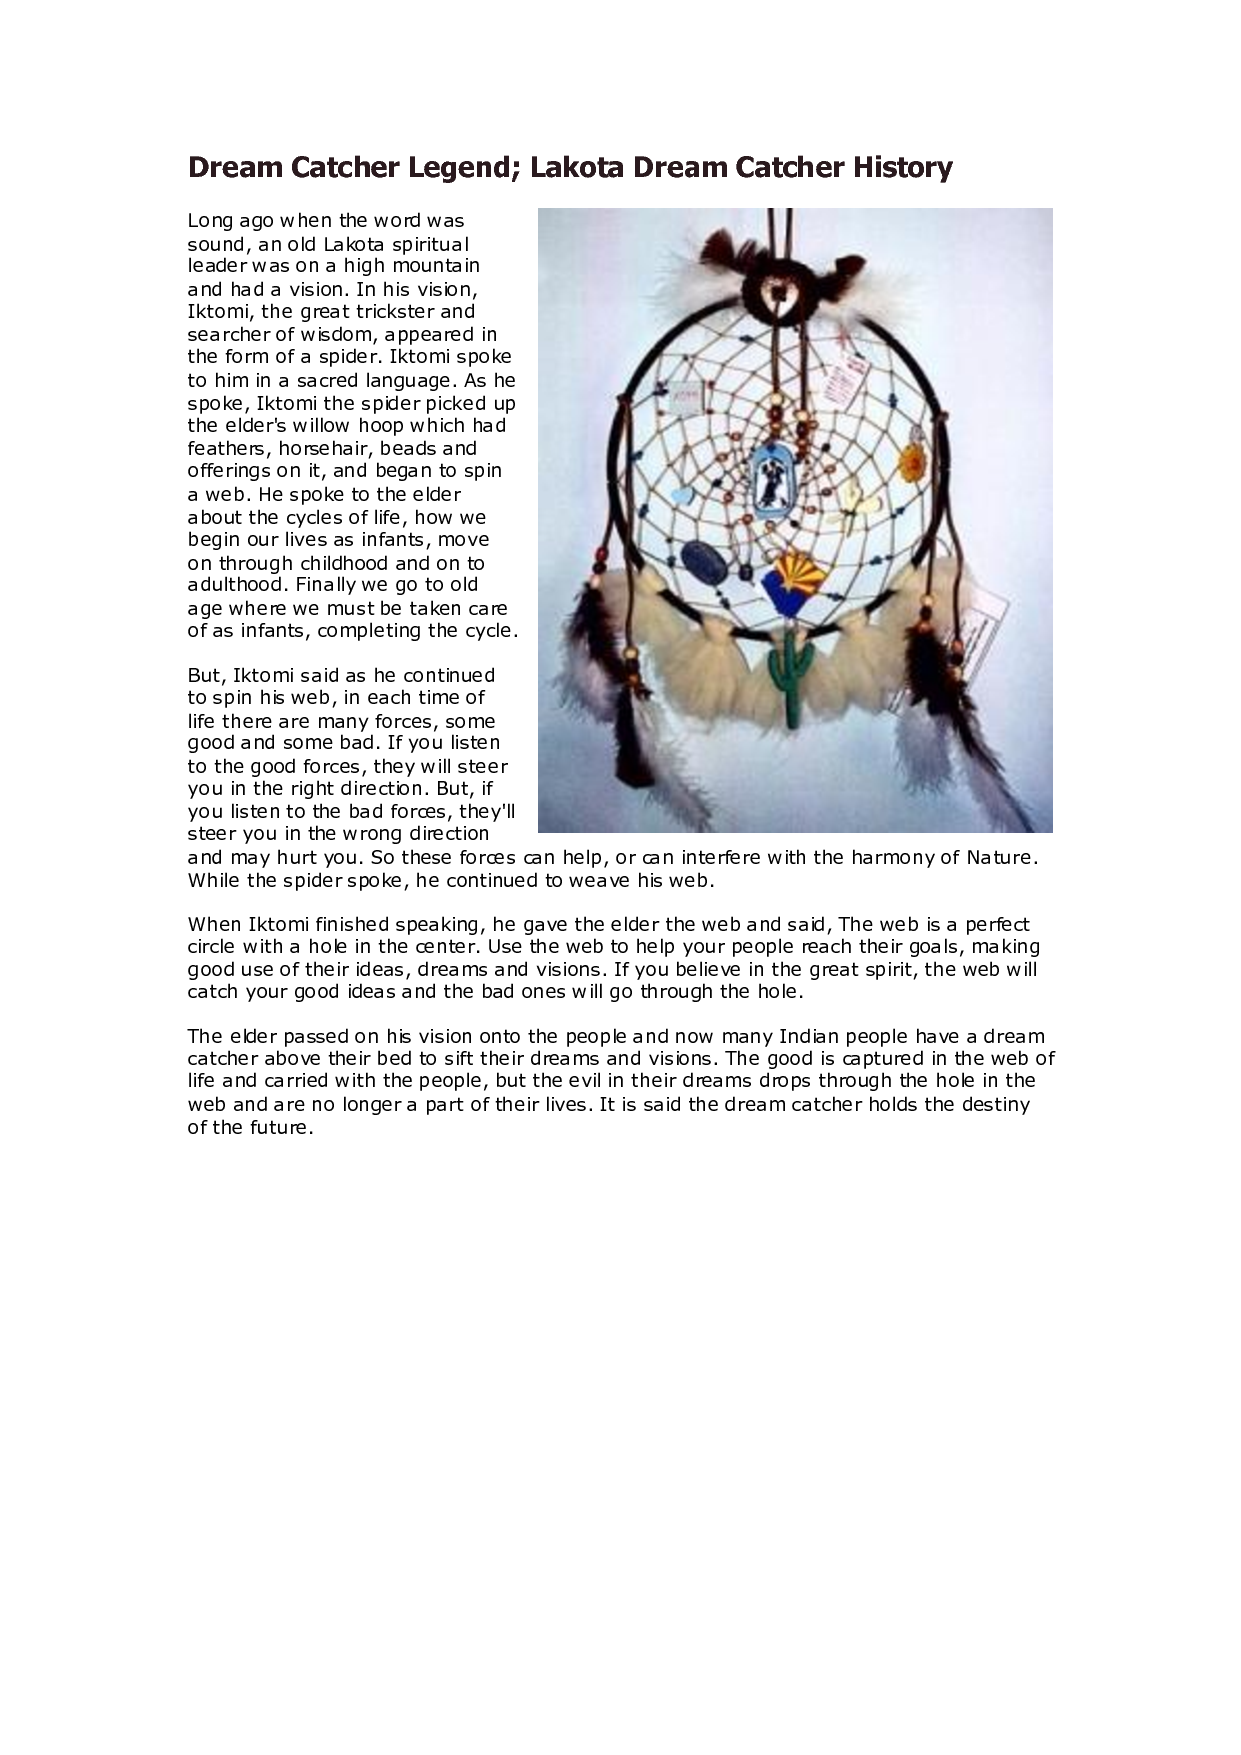 History Of Dream Catchers Entrancing Lakota Dream Catcher Legend  Dream Catcher Legend Lakota Dream